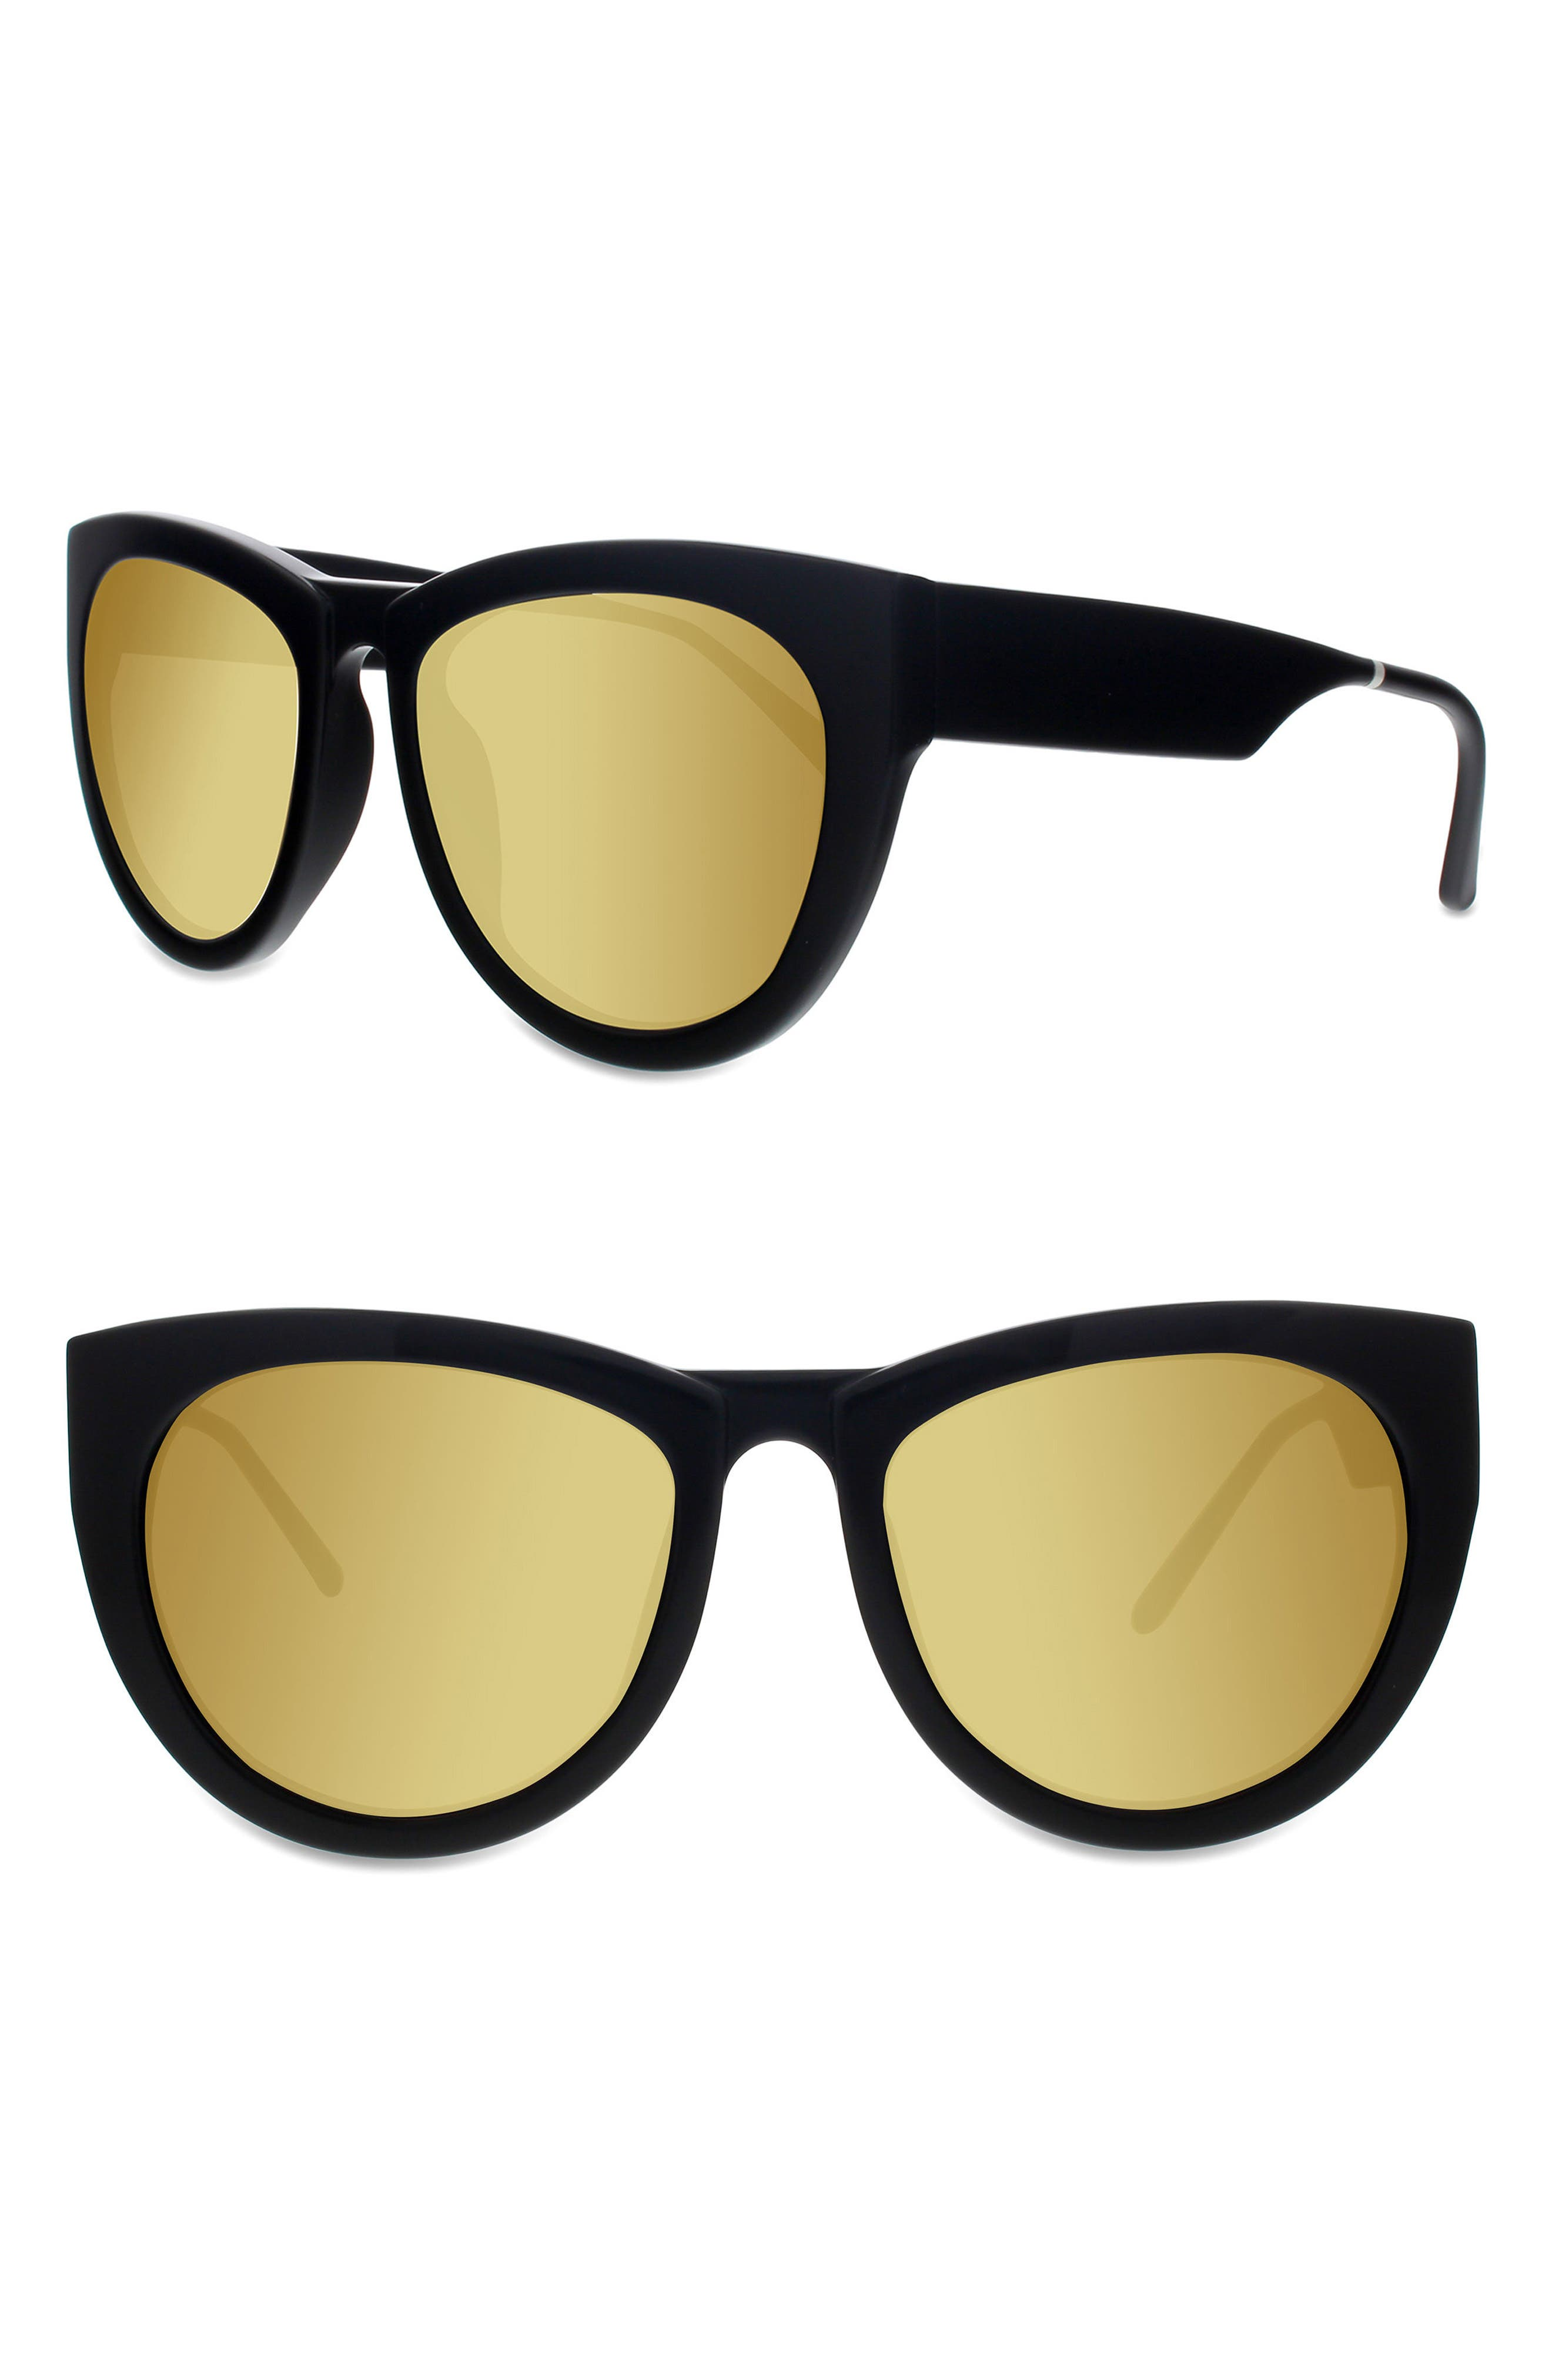 SMOKE X MIRRORS RUNAROUND SUE 60MM CAT EYE SUNGLASSES - BLACK/ GOLD MIRROR